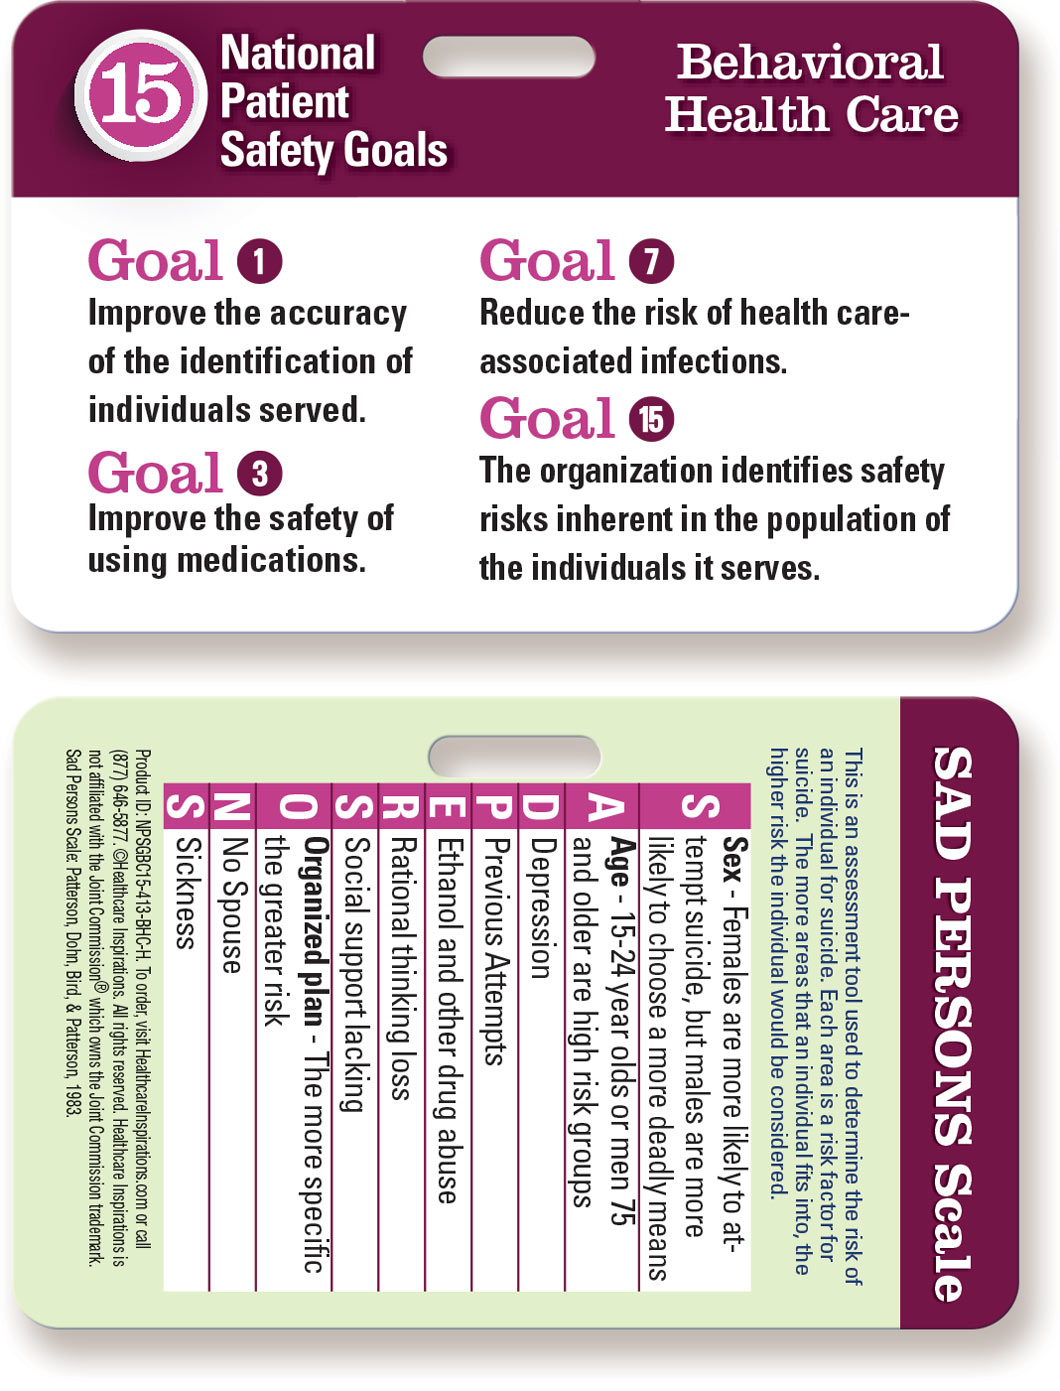 abib national patient safety goals The national patient safety goals (npsgs) are a critical method by which the joint commission promotes and enforces major changes in patient safety the joint commission regularly revises the npsgs based on their impact, cost, and effectiveness, in order to ensure health care facilities focus on preventing major sources of patient harm major focus areas include promoting surgical safety and preventing hospital-acquired infections, medication errors, and specific clinical harms such as falls.